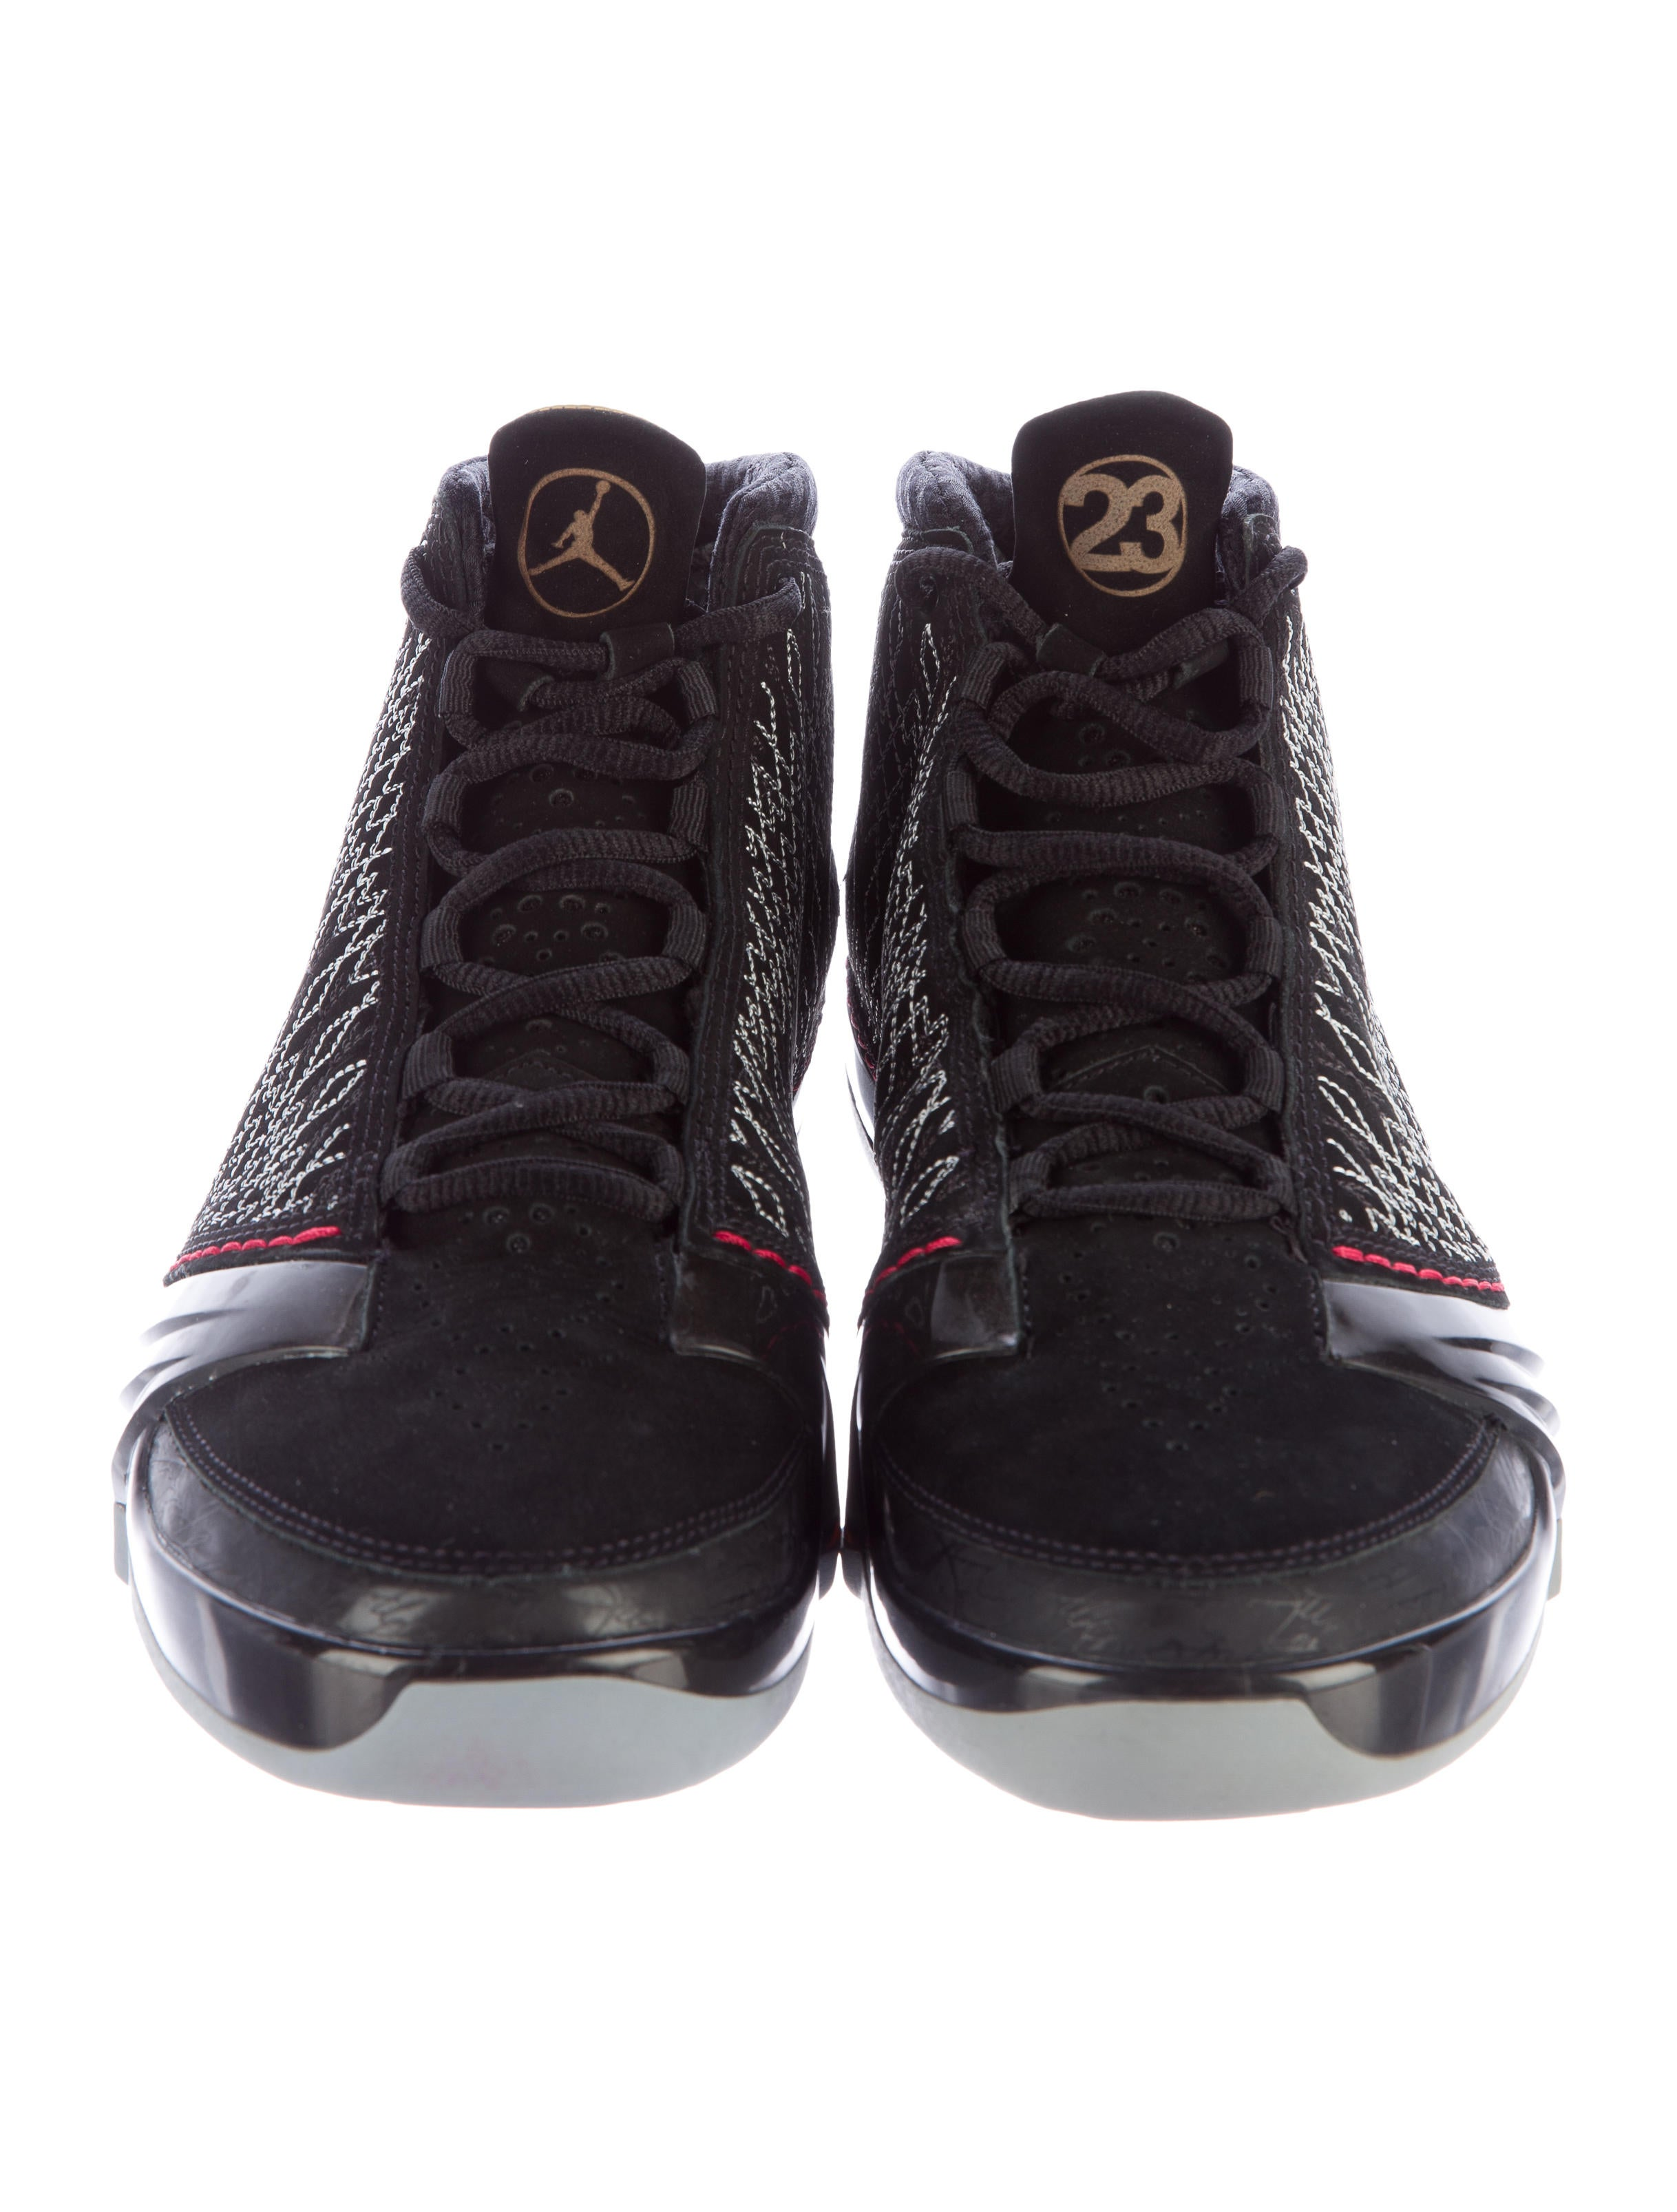 nike air jordan xx3 high top sneakers shoes wniaj20031 the realreal. Black Bedroom Furniture Sets. Home Design Ideas